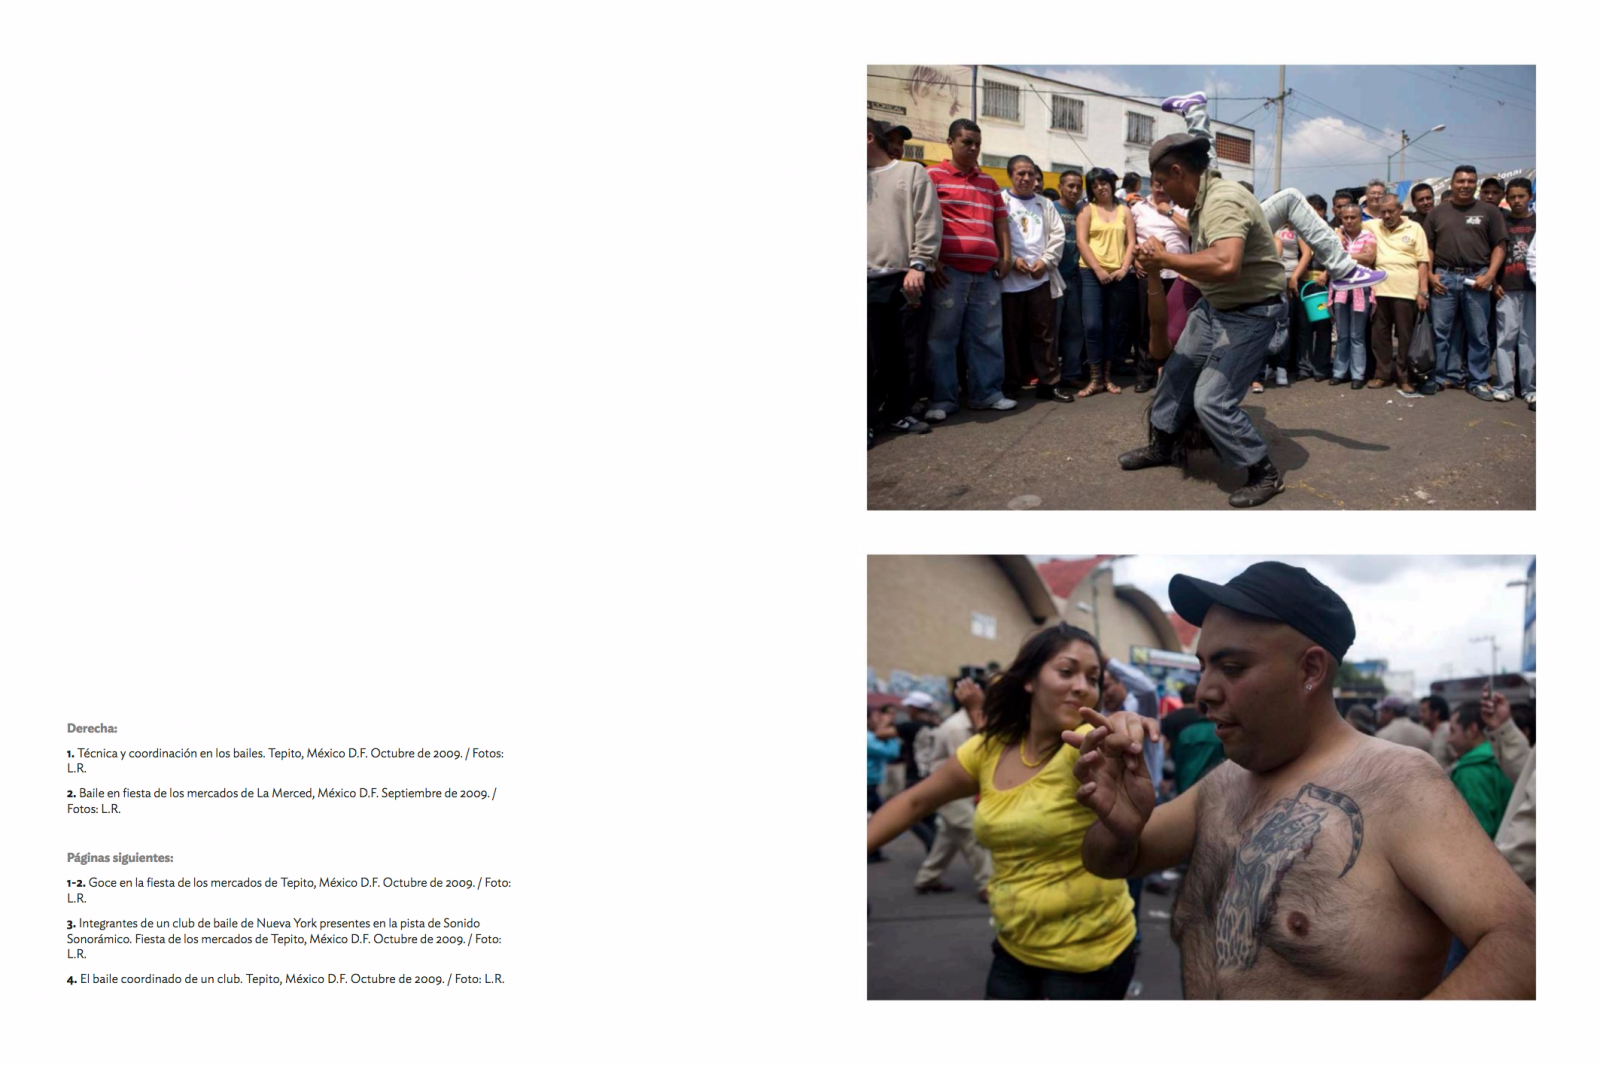 Art and Documentary Photography - Loading soniderosaceras4_web_pub.png